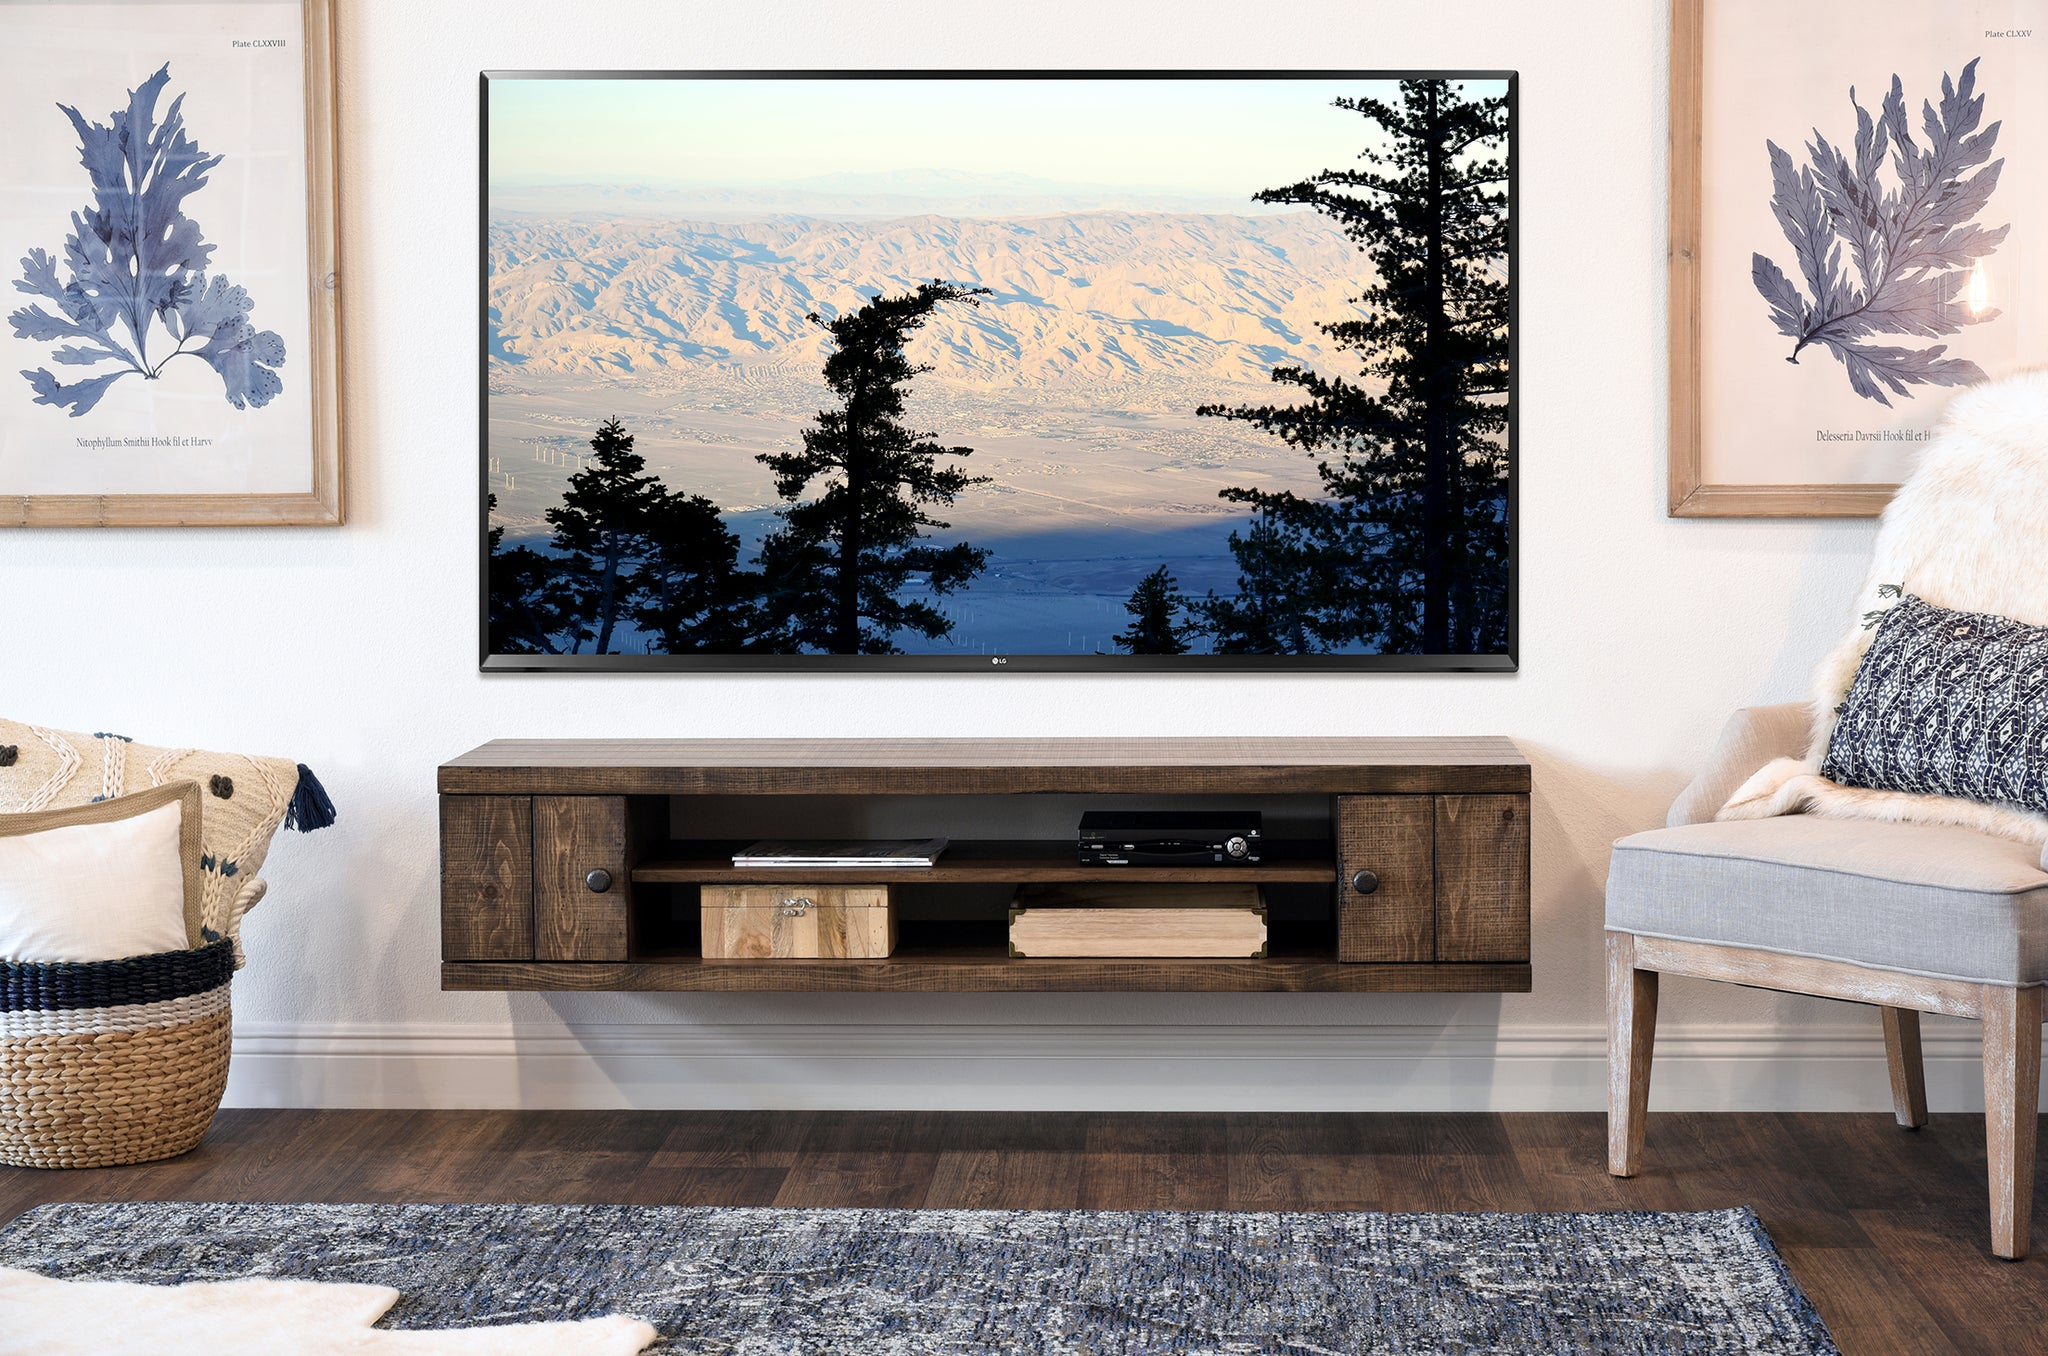 Rustic Reclaimed Wood Style Farmhouse Floating TV Stand Console Spice Woodwaves 25f4d413 c0f5 46bb 917d 41e976b7ca8a 2048x